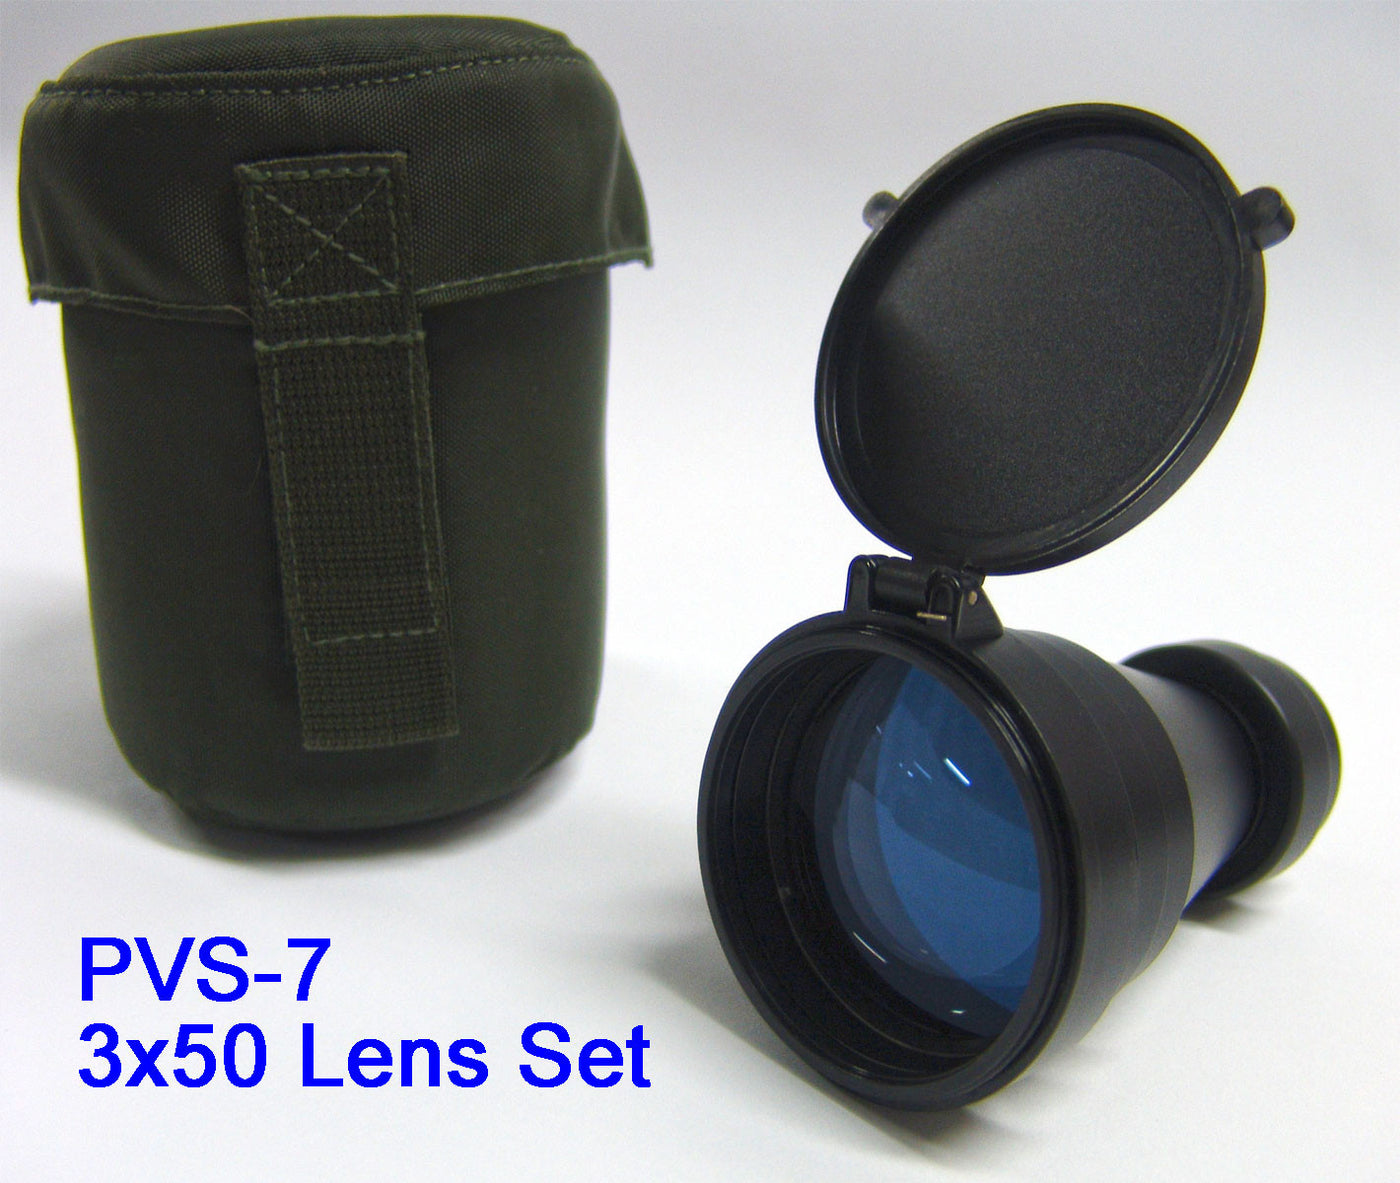 ... PVS-7 3x50 Pinnacle Gen3 Auto-Gated Night Vision Binoculars, 3x50 Lens  Set